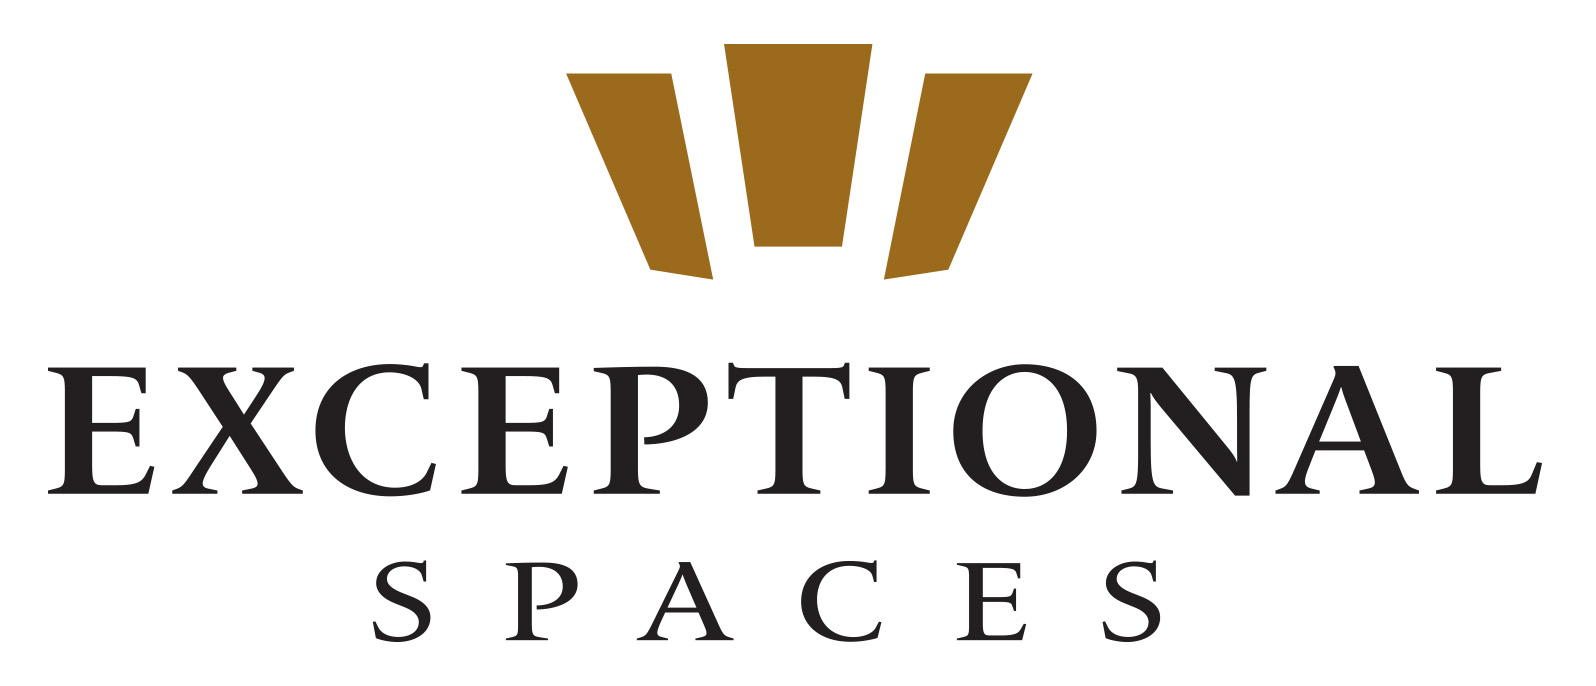 Exceptional Spaces